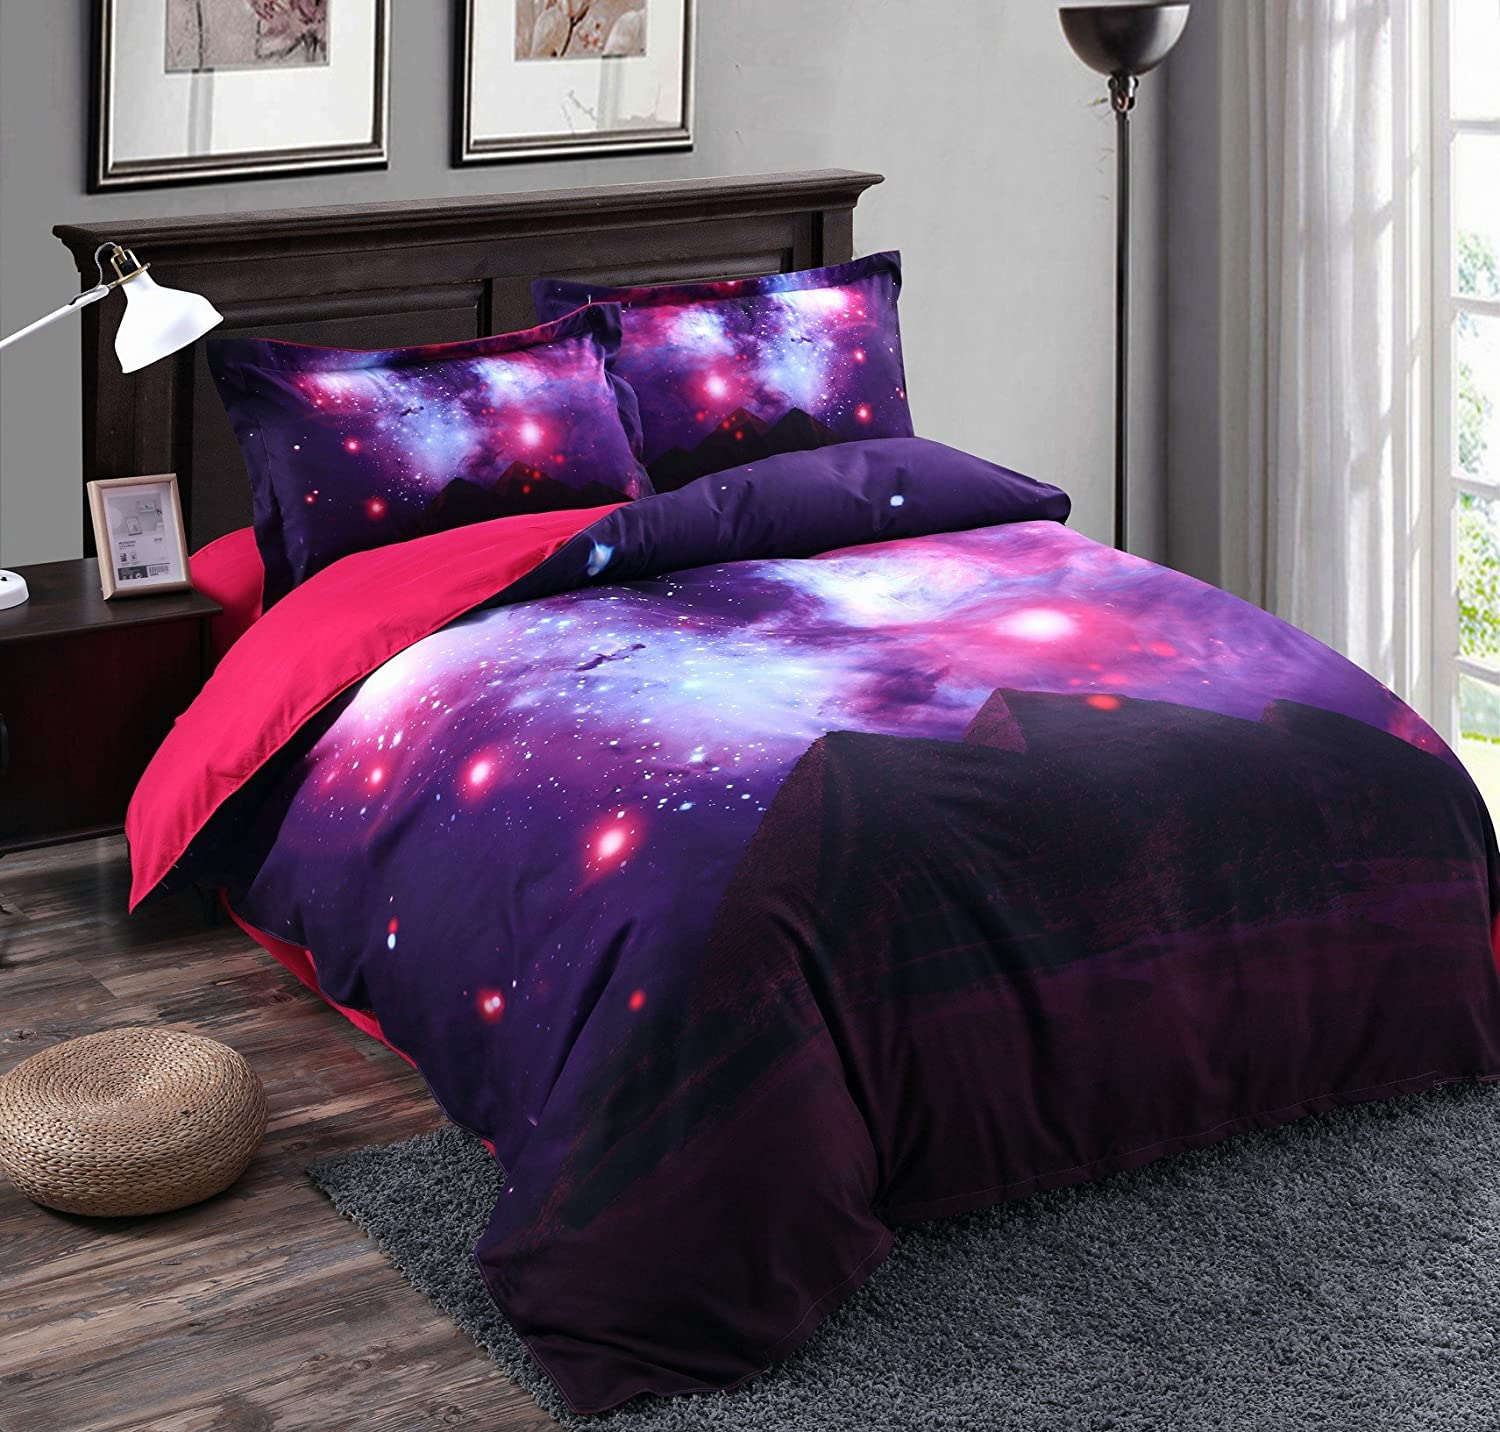 Amazoncom Alicemall 3D Galaxy Bedding Purple Red